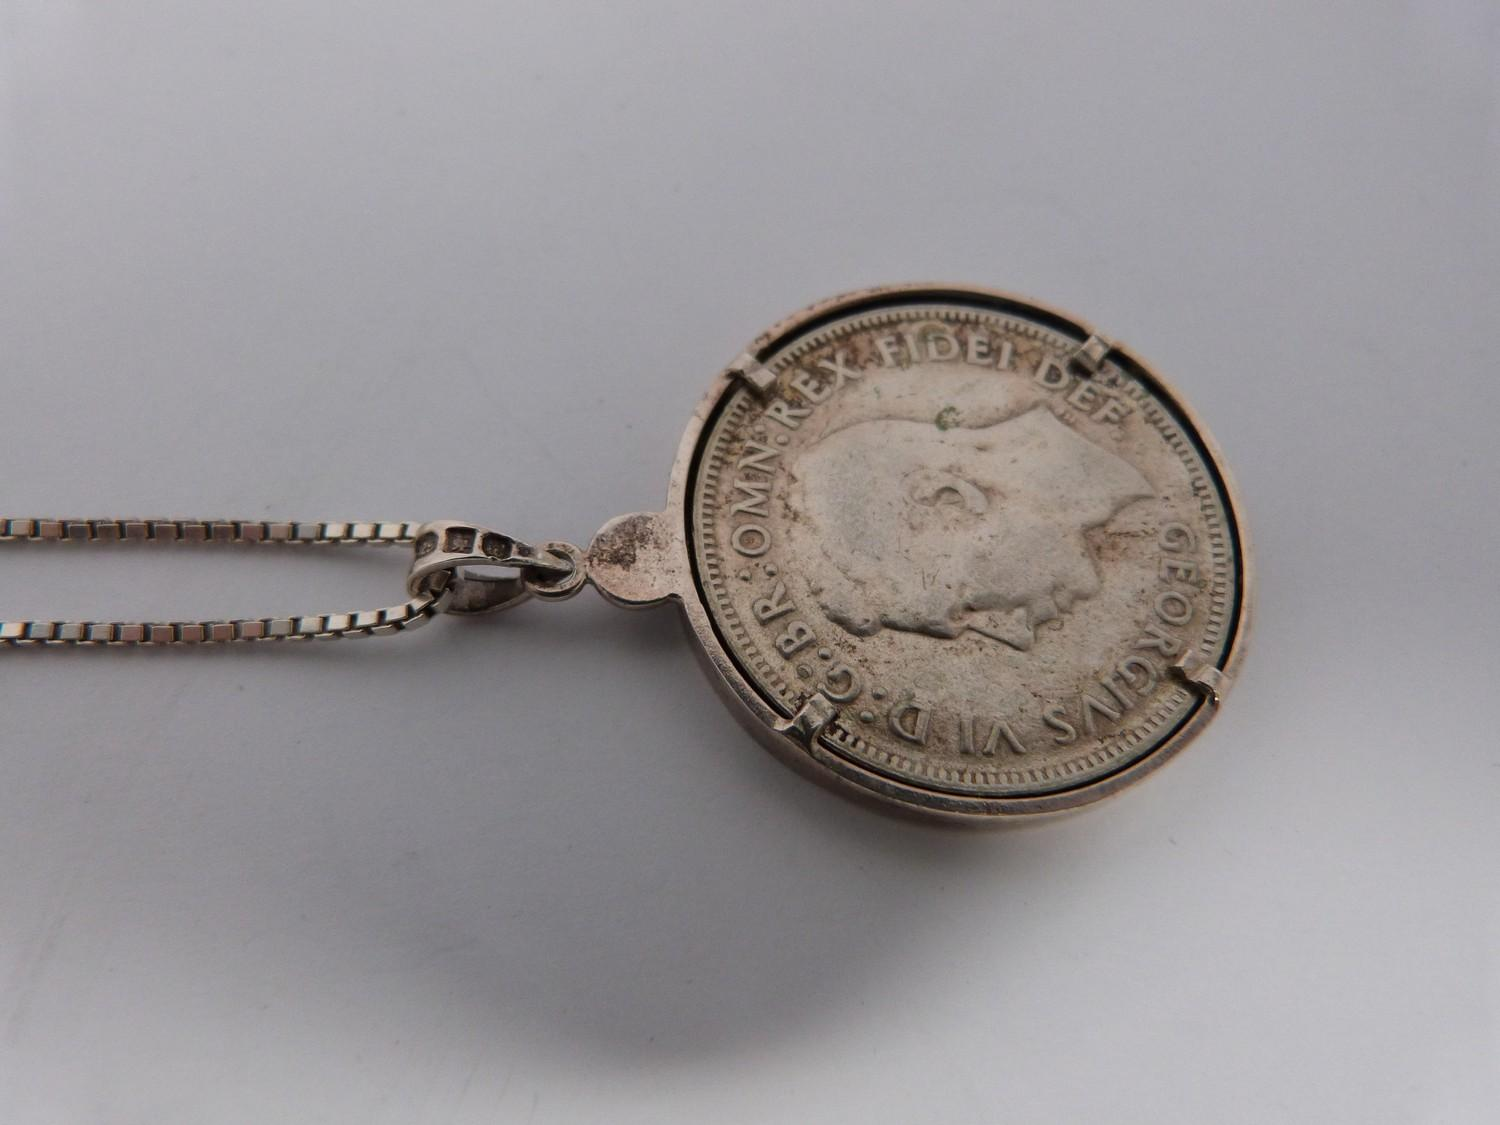 Two silver coins in silver and white metal mounts on silver chains, an American one dollar coin, - Image 6 of 6